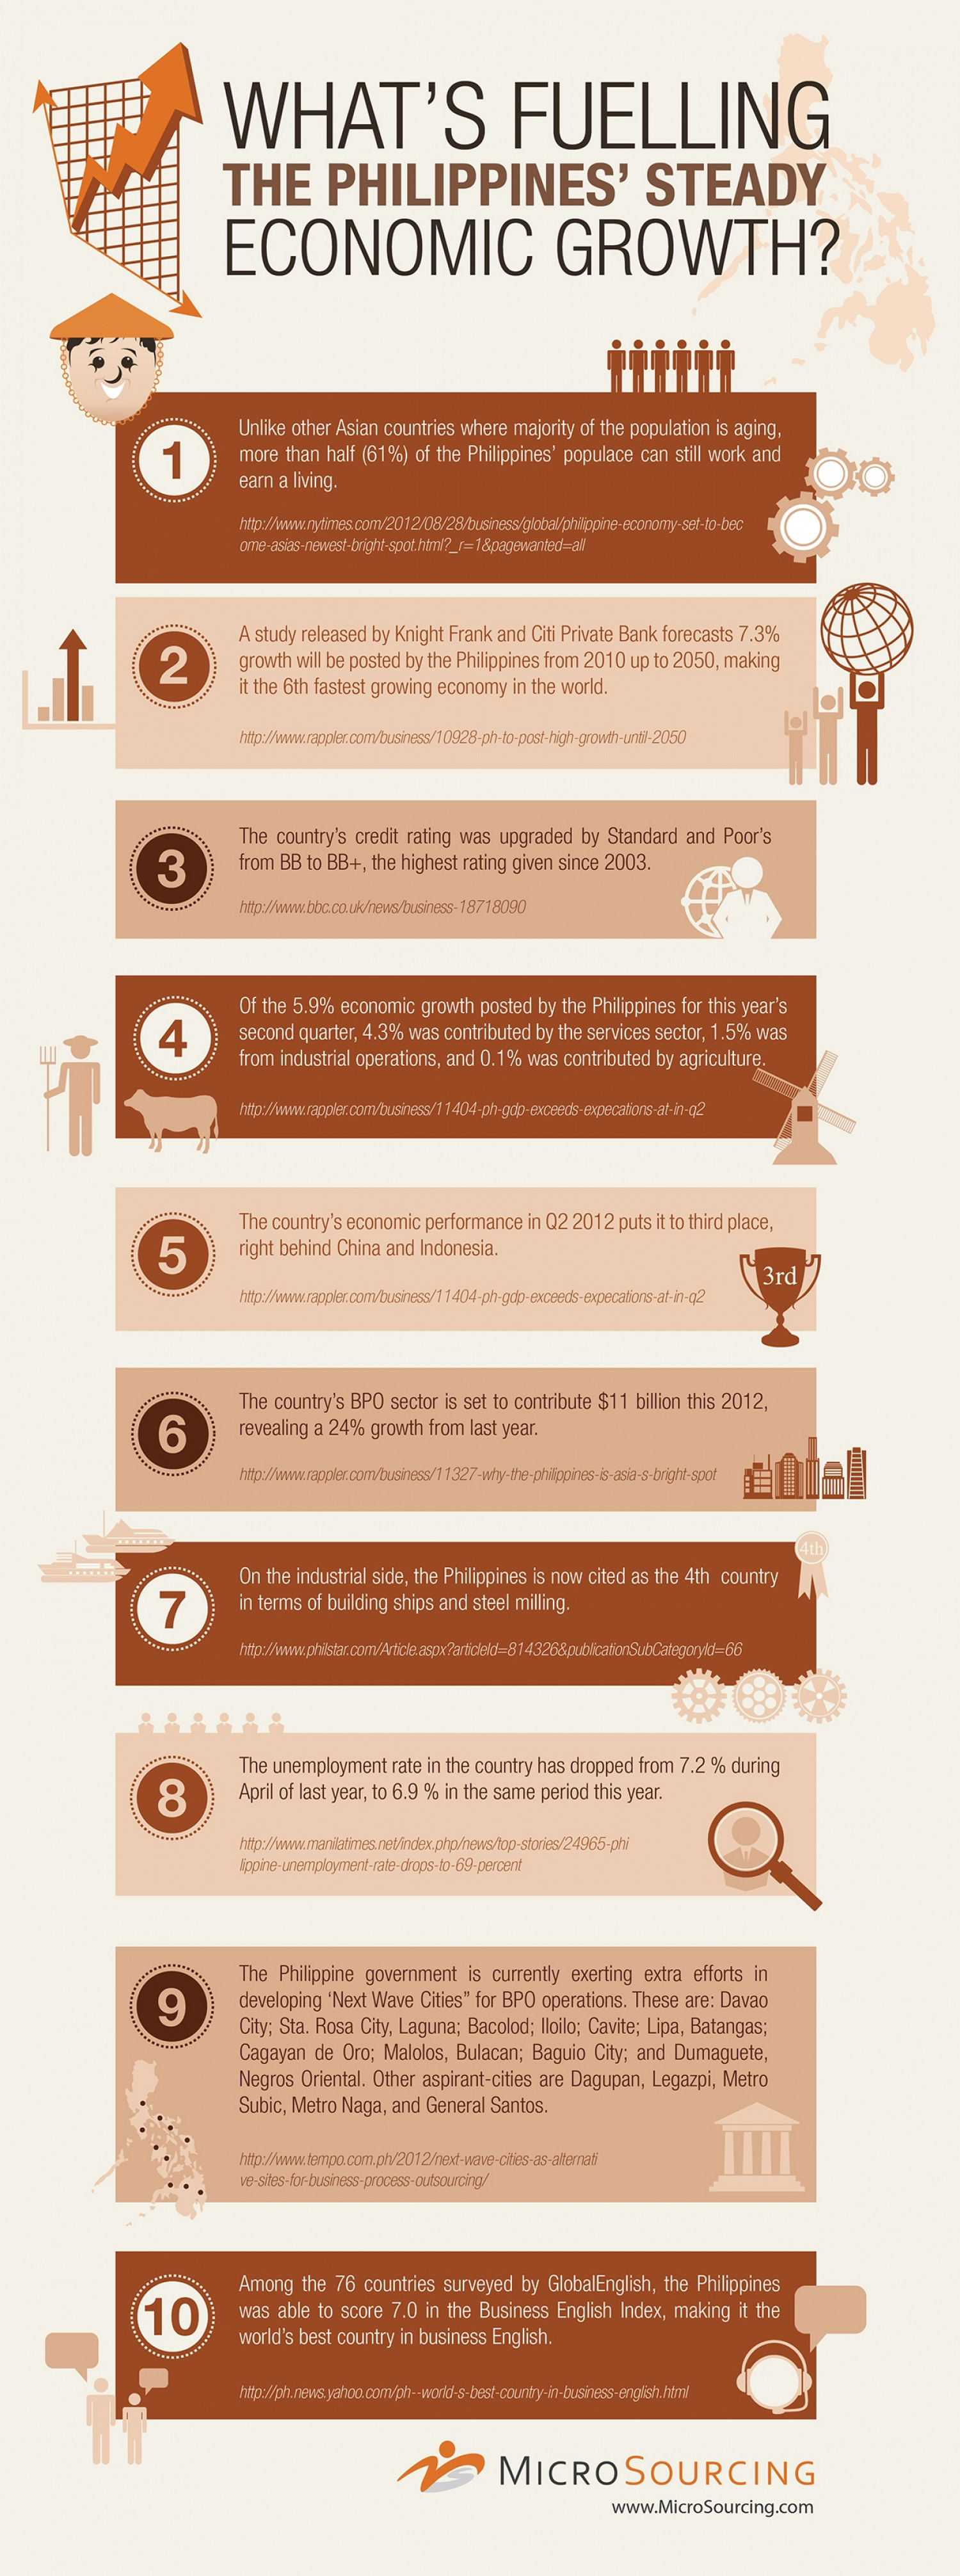 Key Growth Drivers of the Philippine Economy Infographic